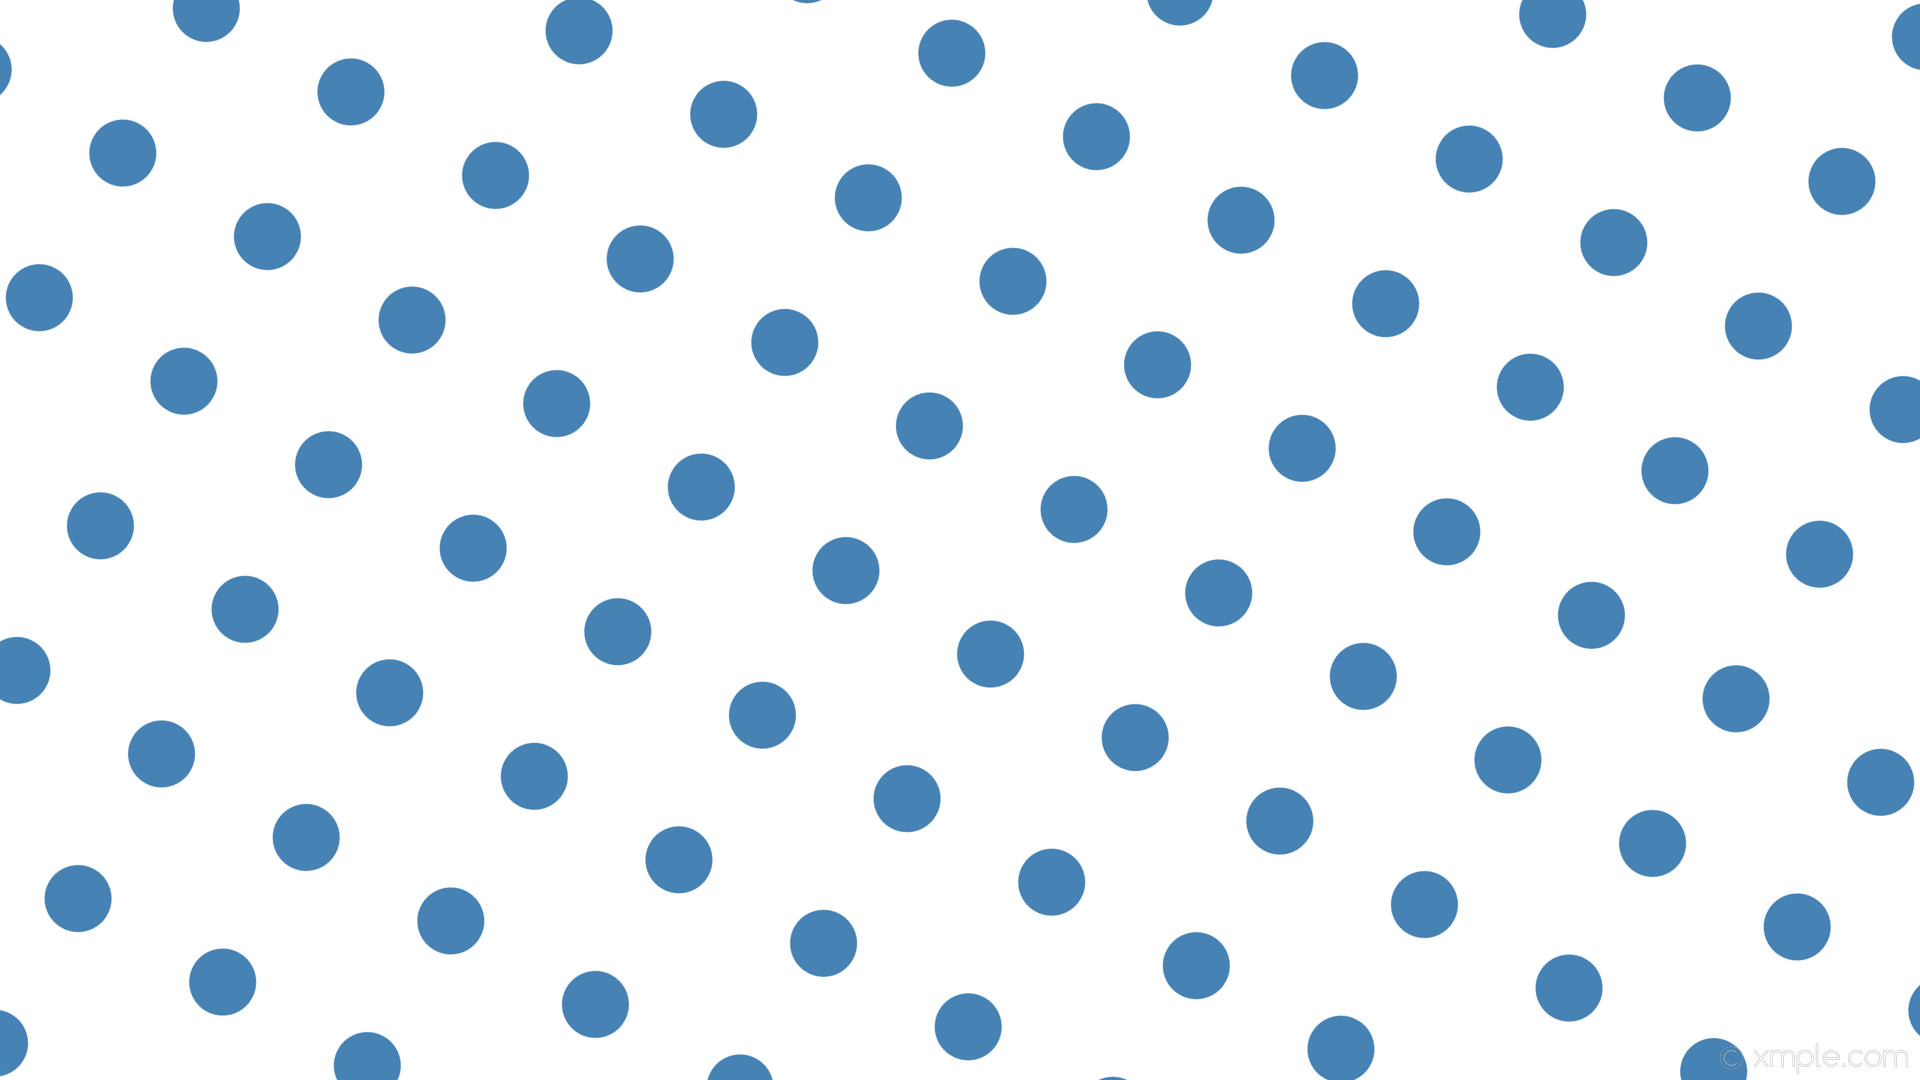 wallpaper white polka dots spots blue steel blue #ffffff #4682b4 240° 67px  167px